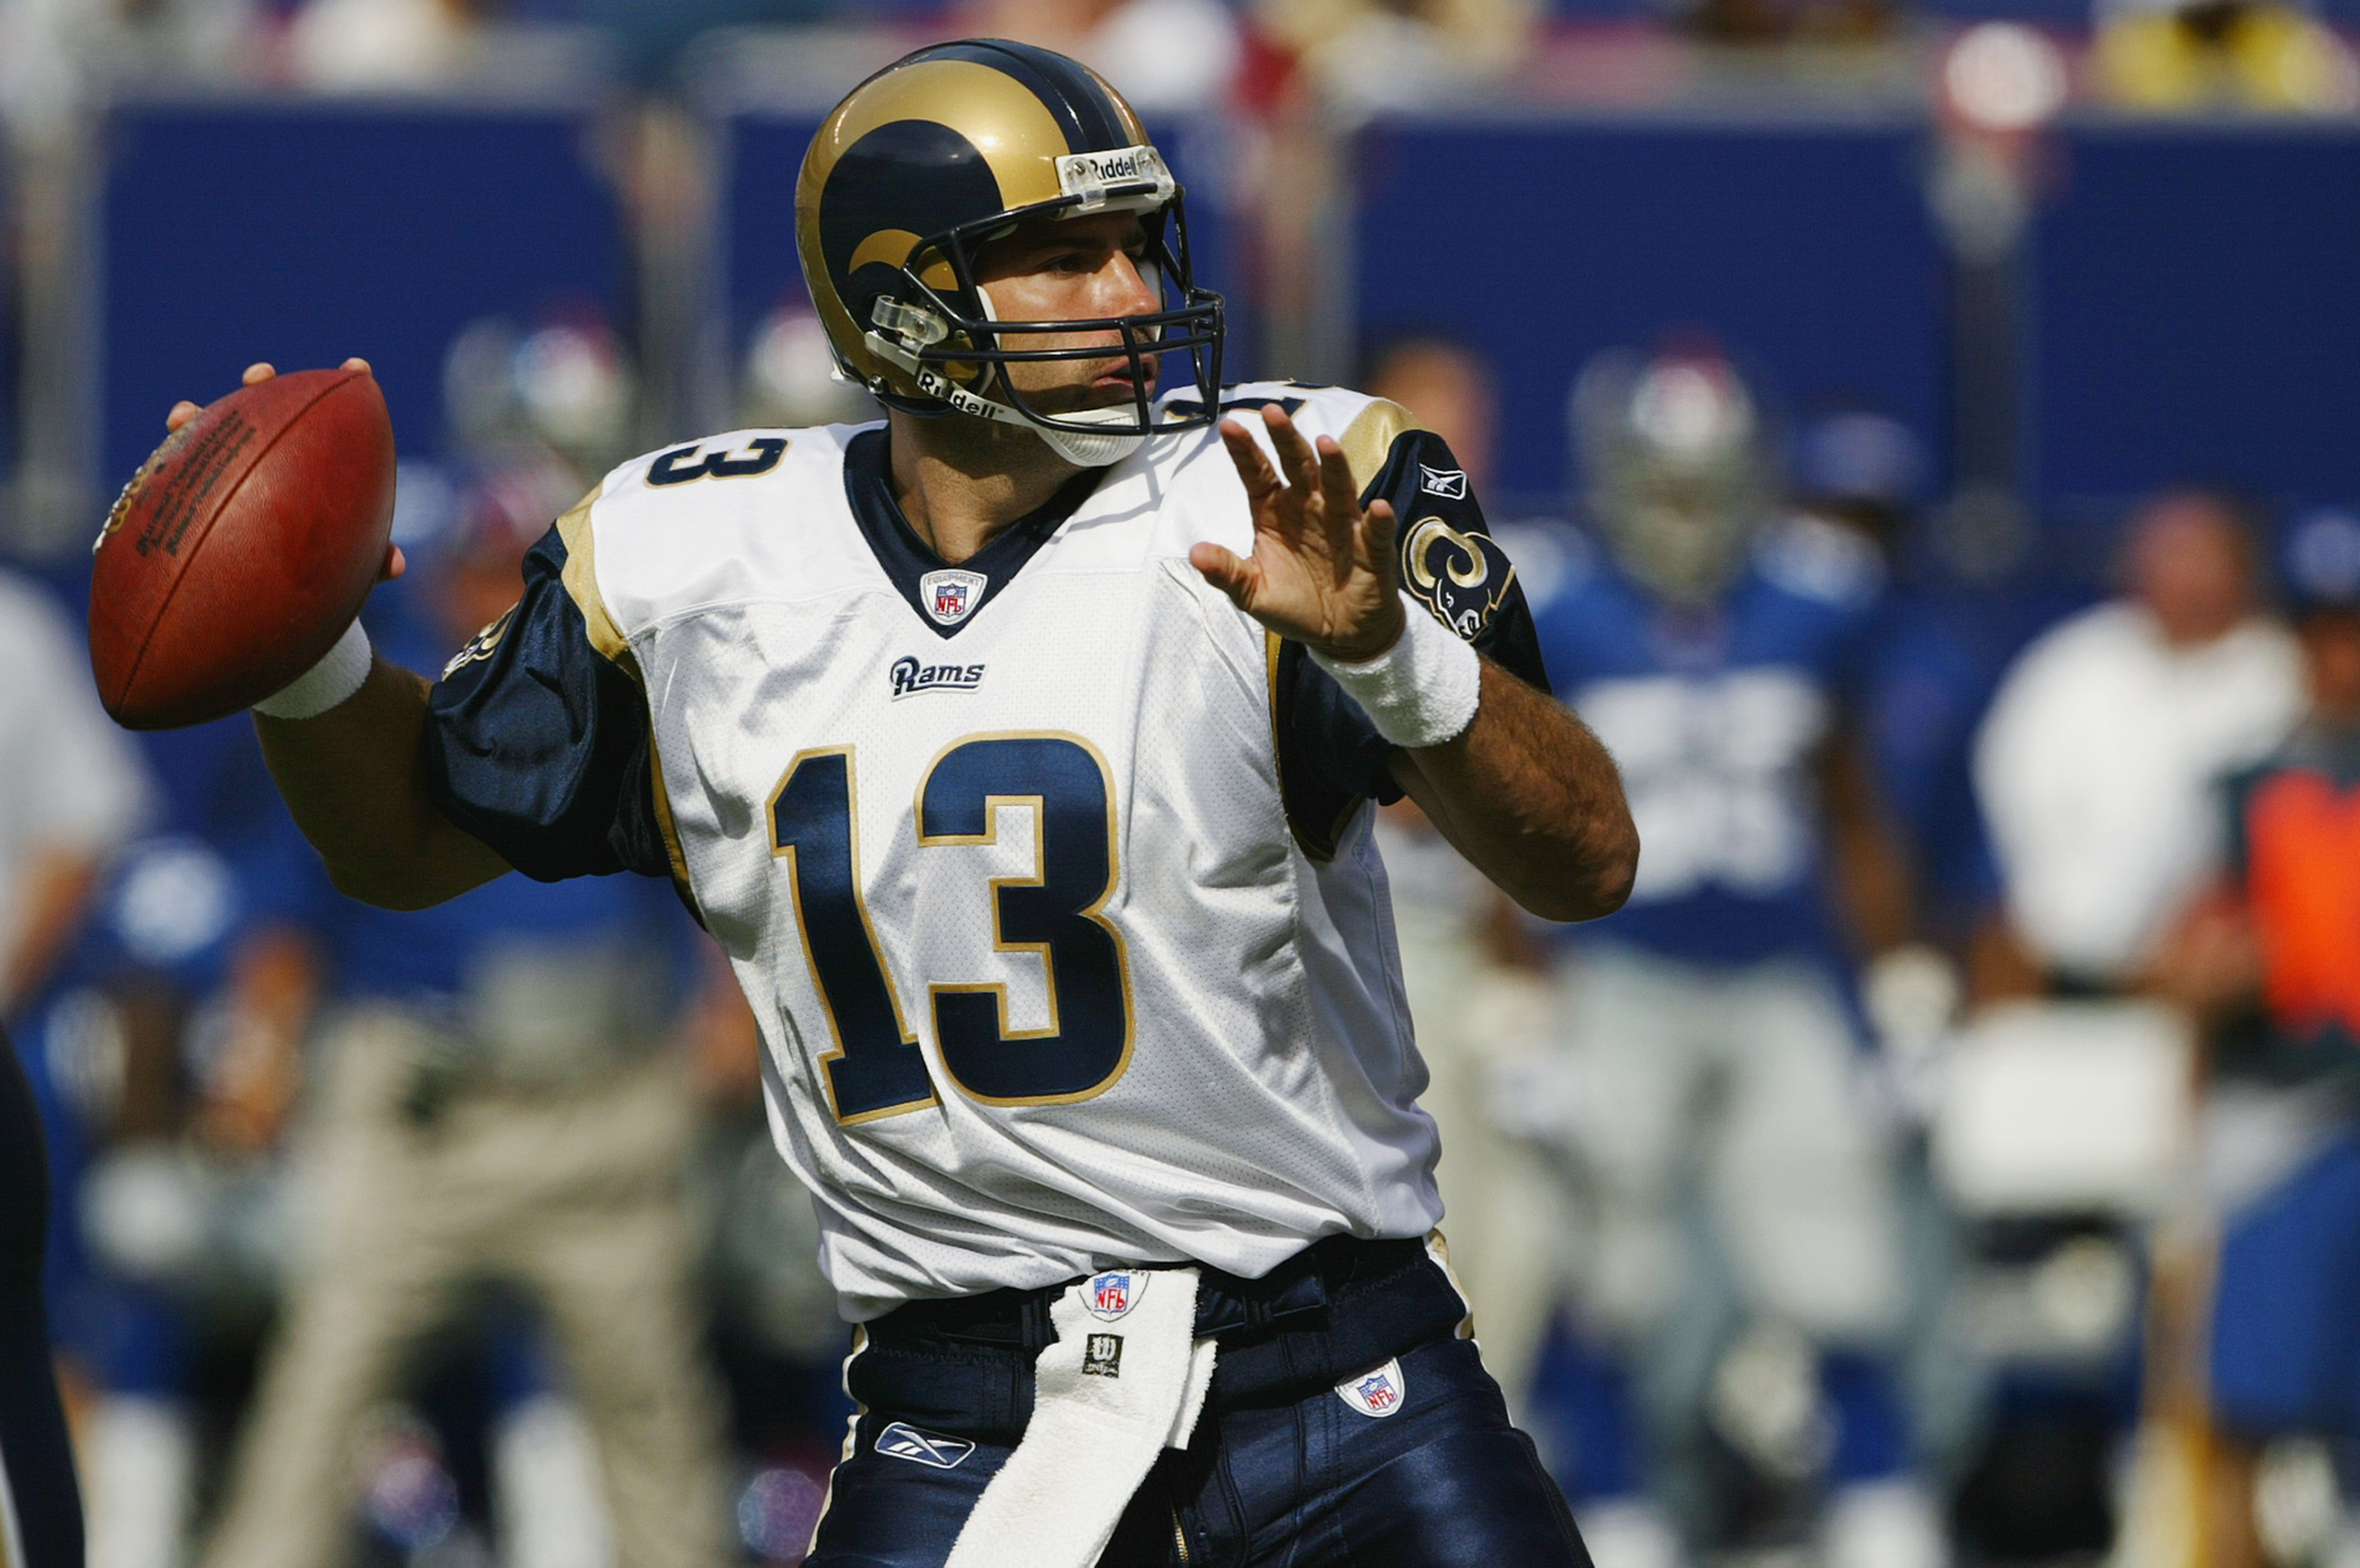 EAST RUTHERFORD, NJ - SEPTEMBER 7:  Quarterback Kurt Warner #13 of the St. Louis Rams throws a pass against the New York Giants during the game at the Giants Stadium on September 7, 2003 in East Rutherford, New Jersey. The Giants defeated the Rams 23-13.